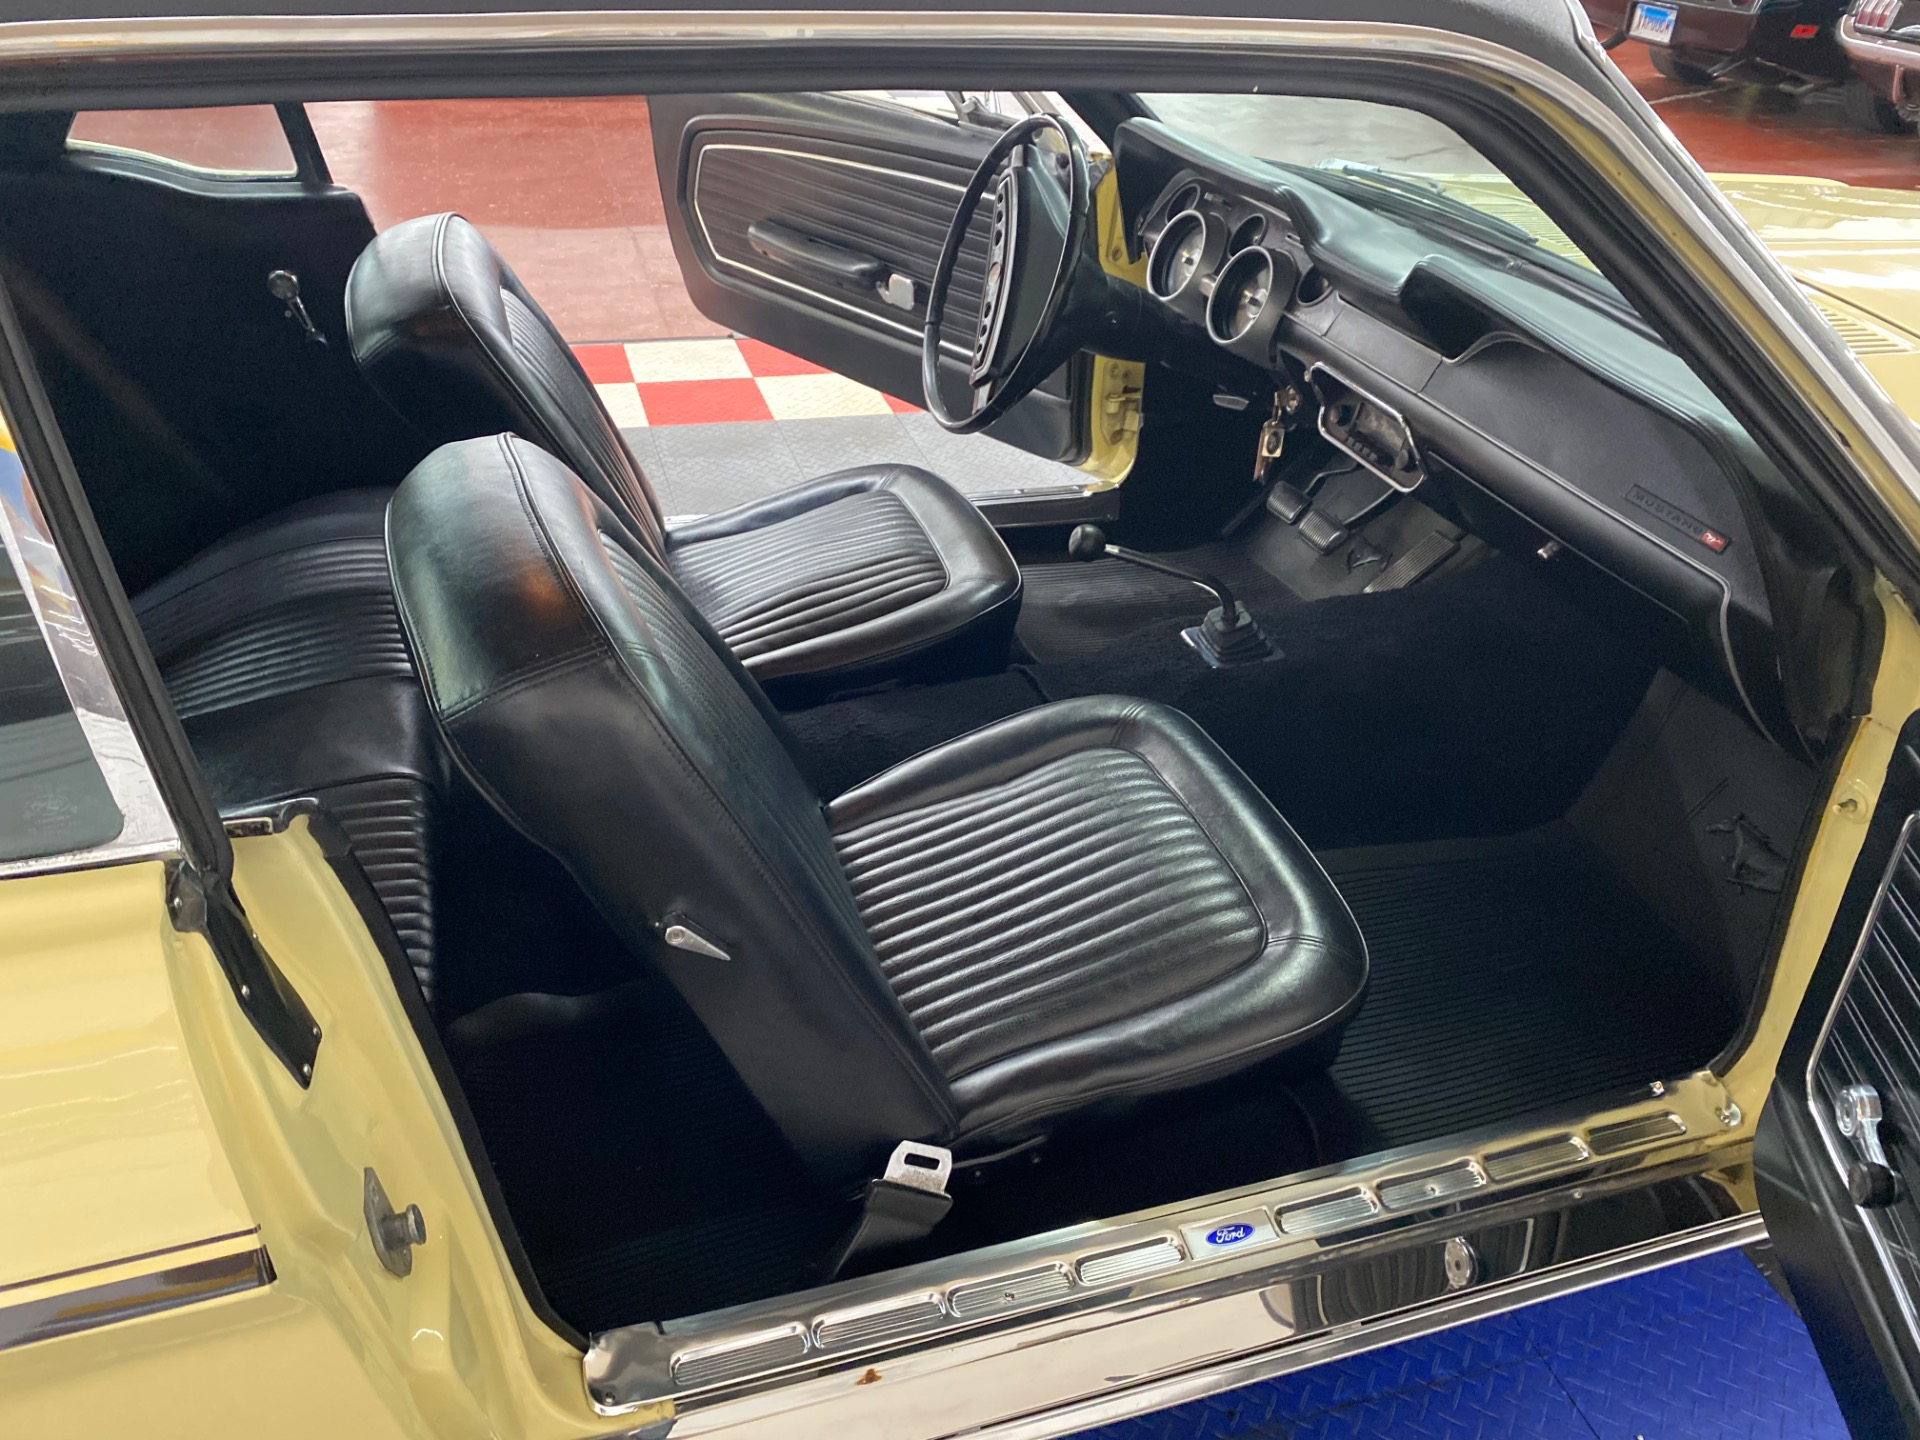 Used 1968 Ford Mustang -COUPE - MANUAL TRANS - CLEAN BODY - SEE VIDEO - | Mundelein, IL